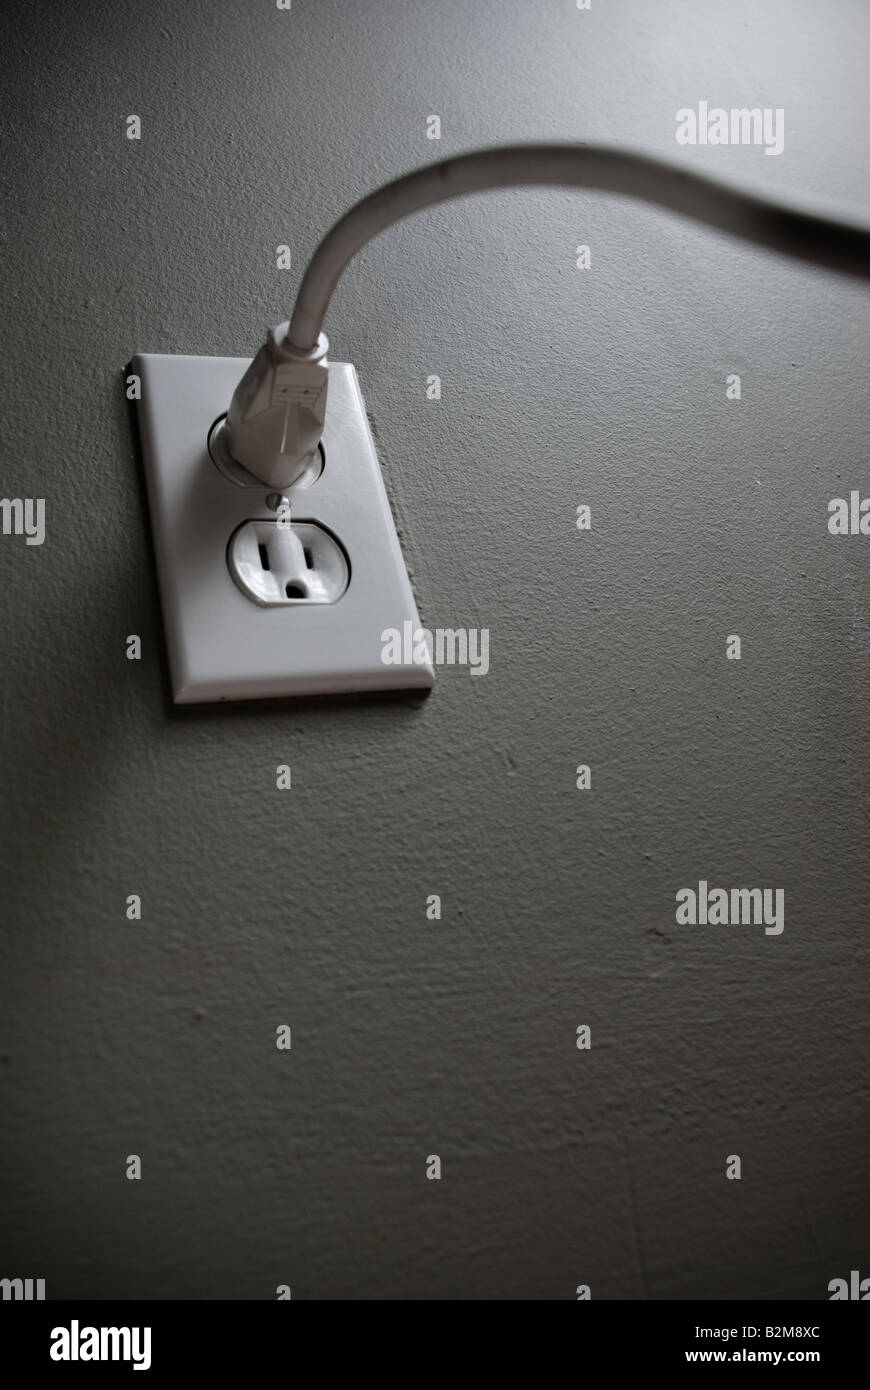 Looking up to and acasting a dark shadow a long white cord plugged into a white power outlet against a grey painted - Stock Image